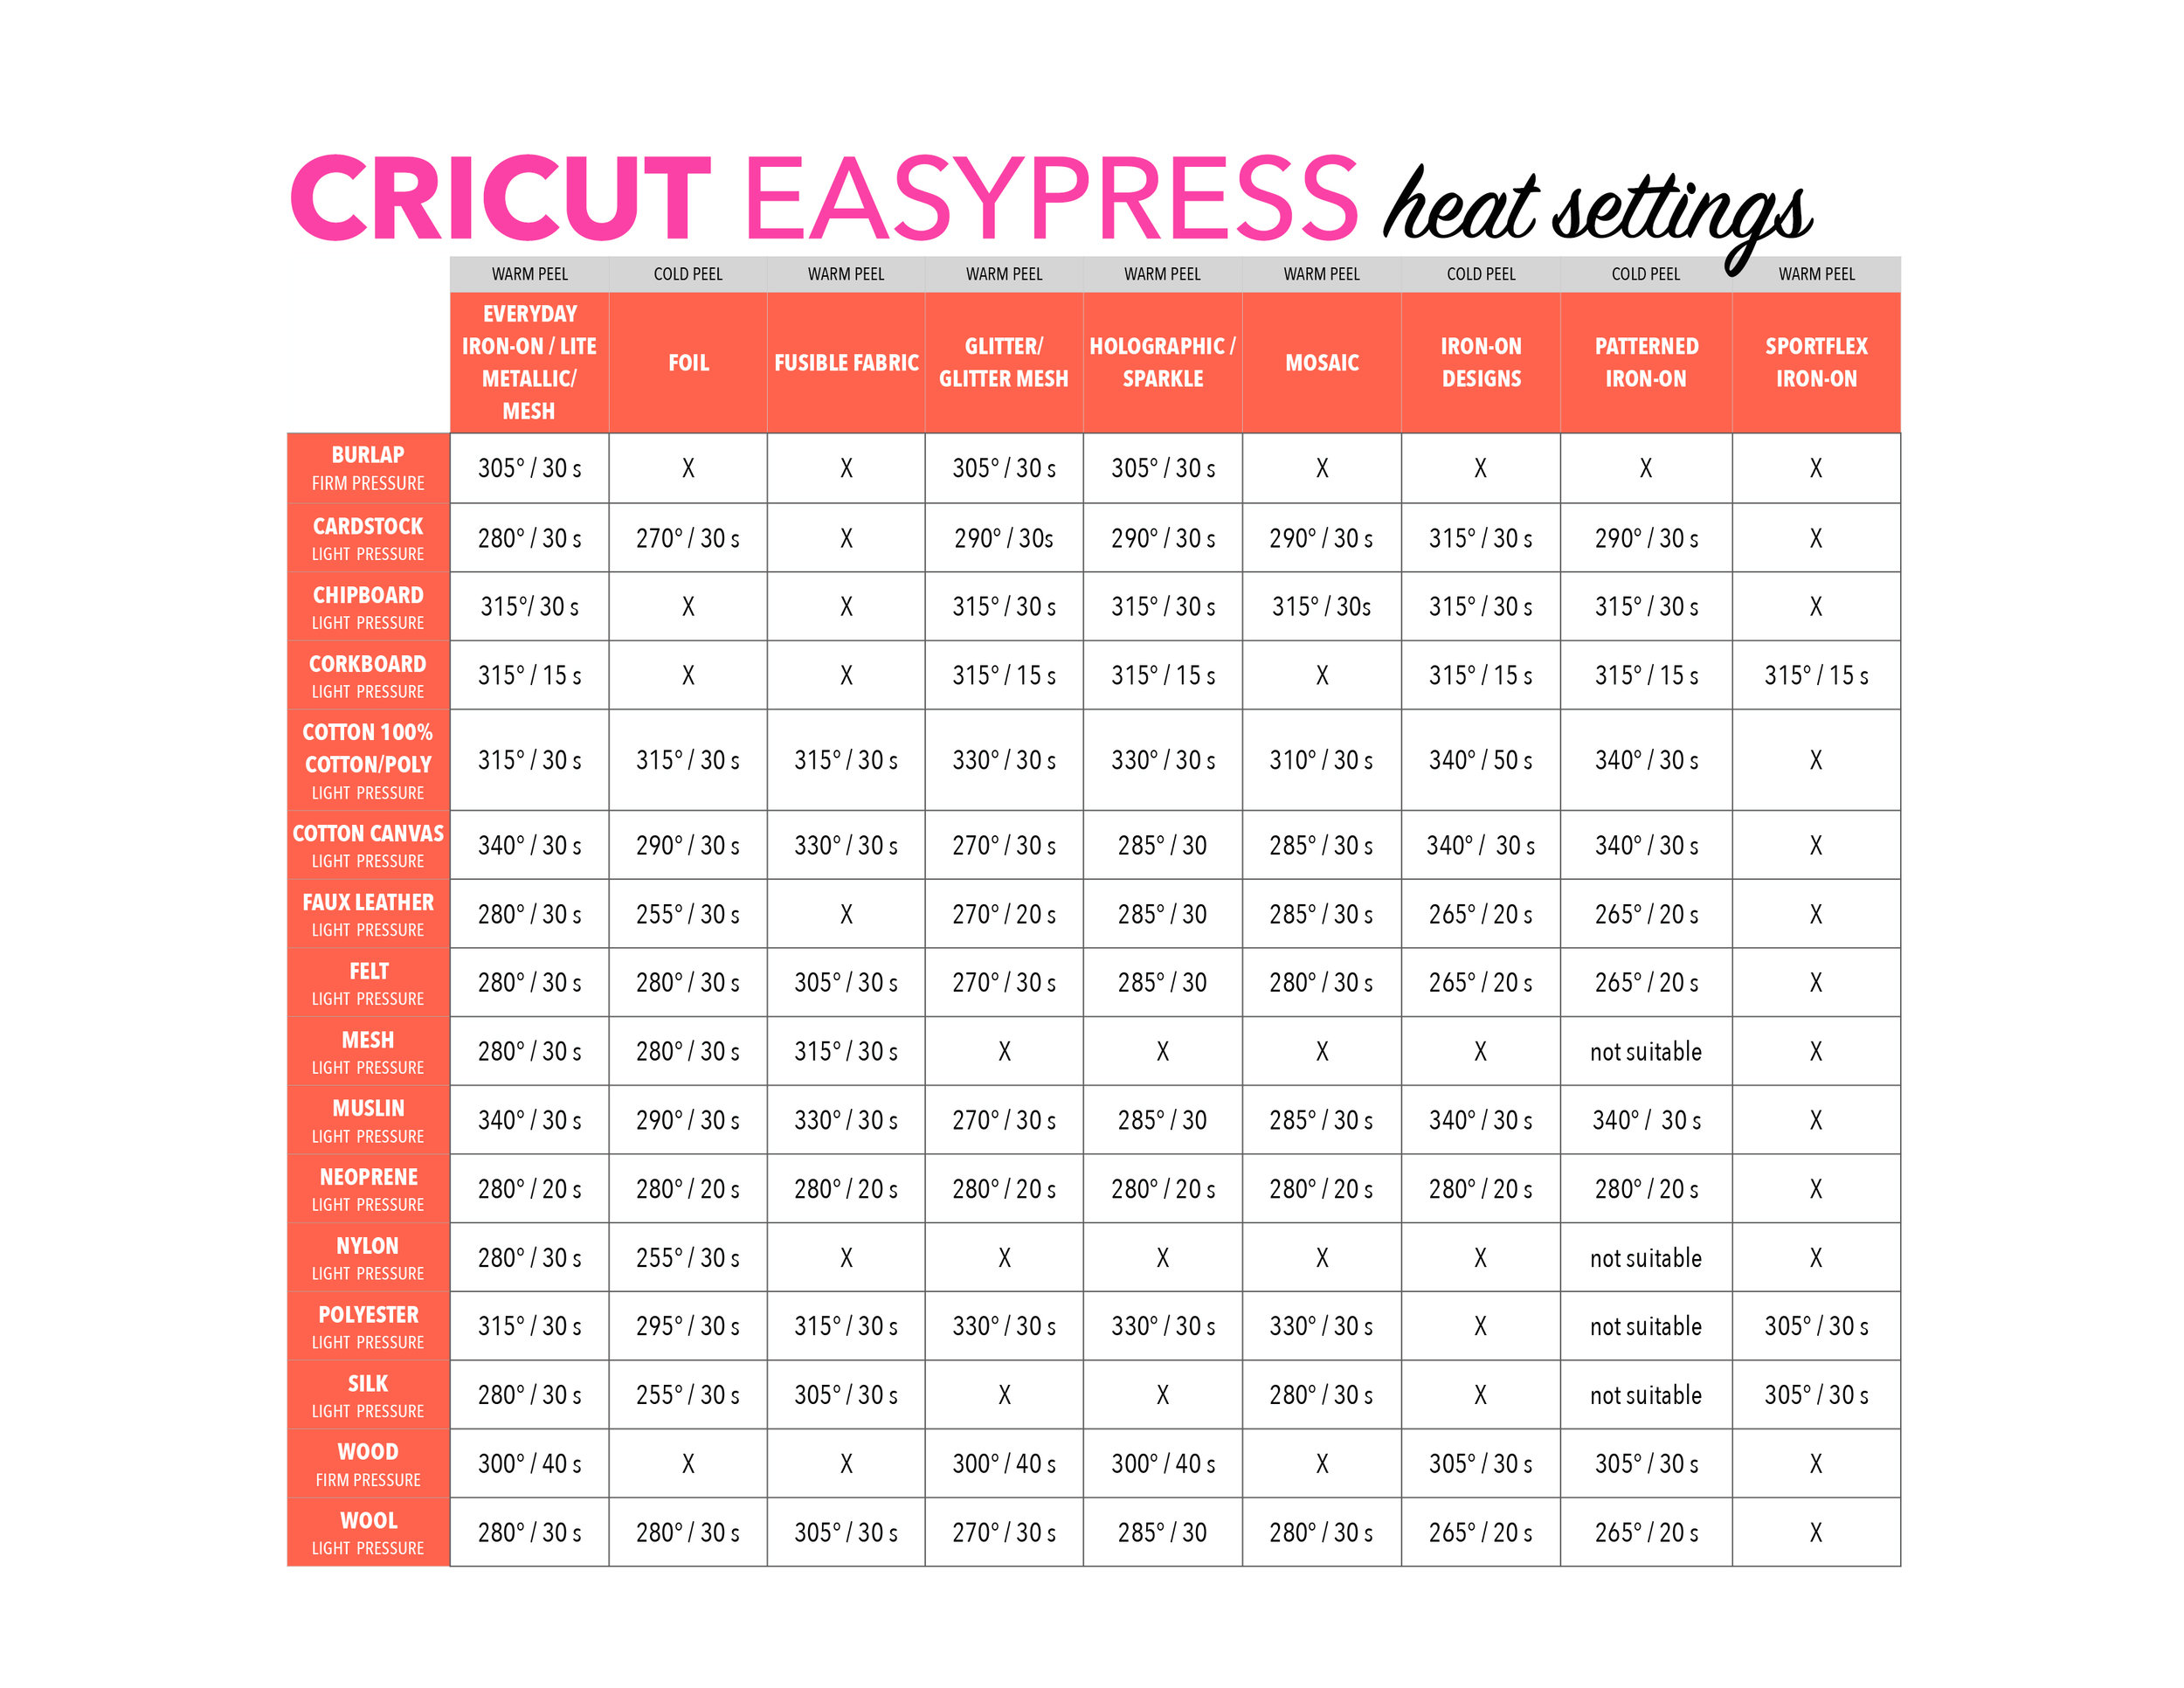 Cricut EasyPress Heat Guide - Printable Heat Settings Chart! Click to download.